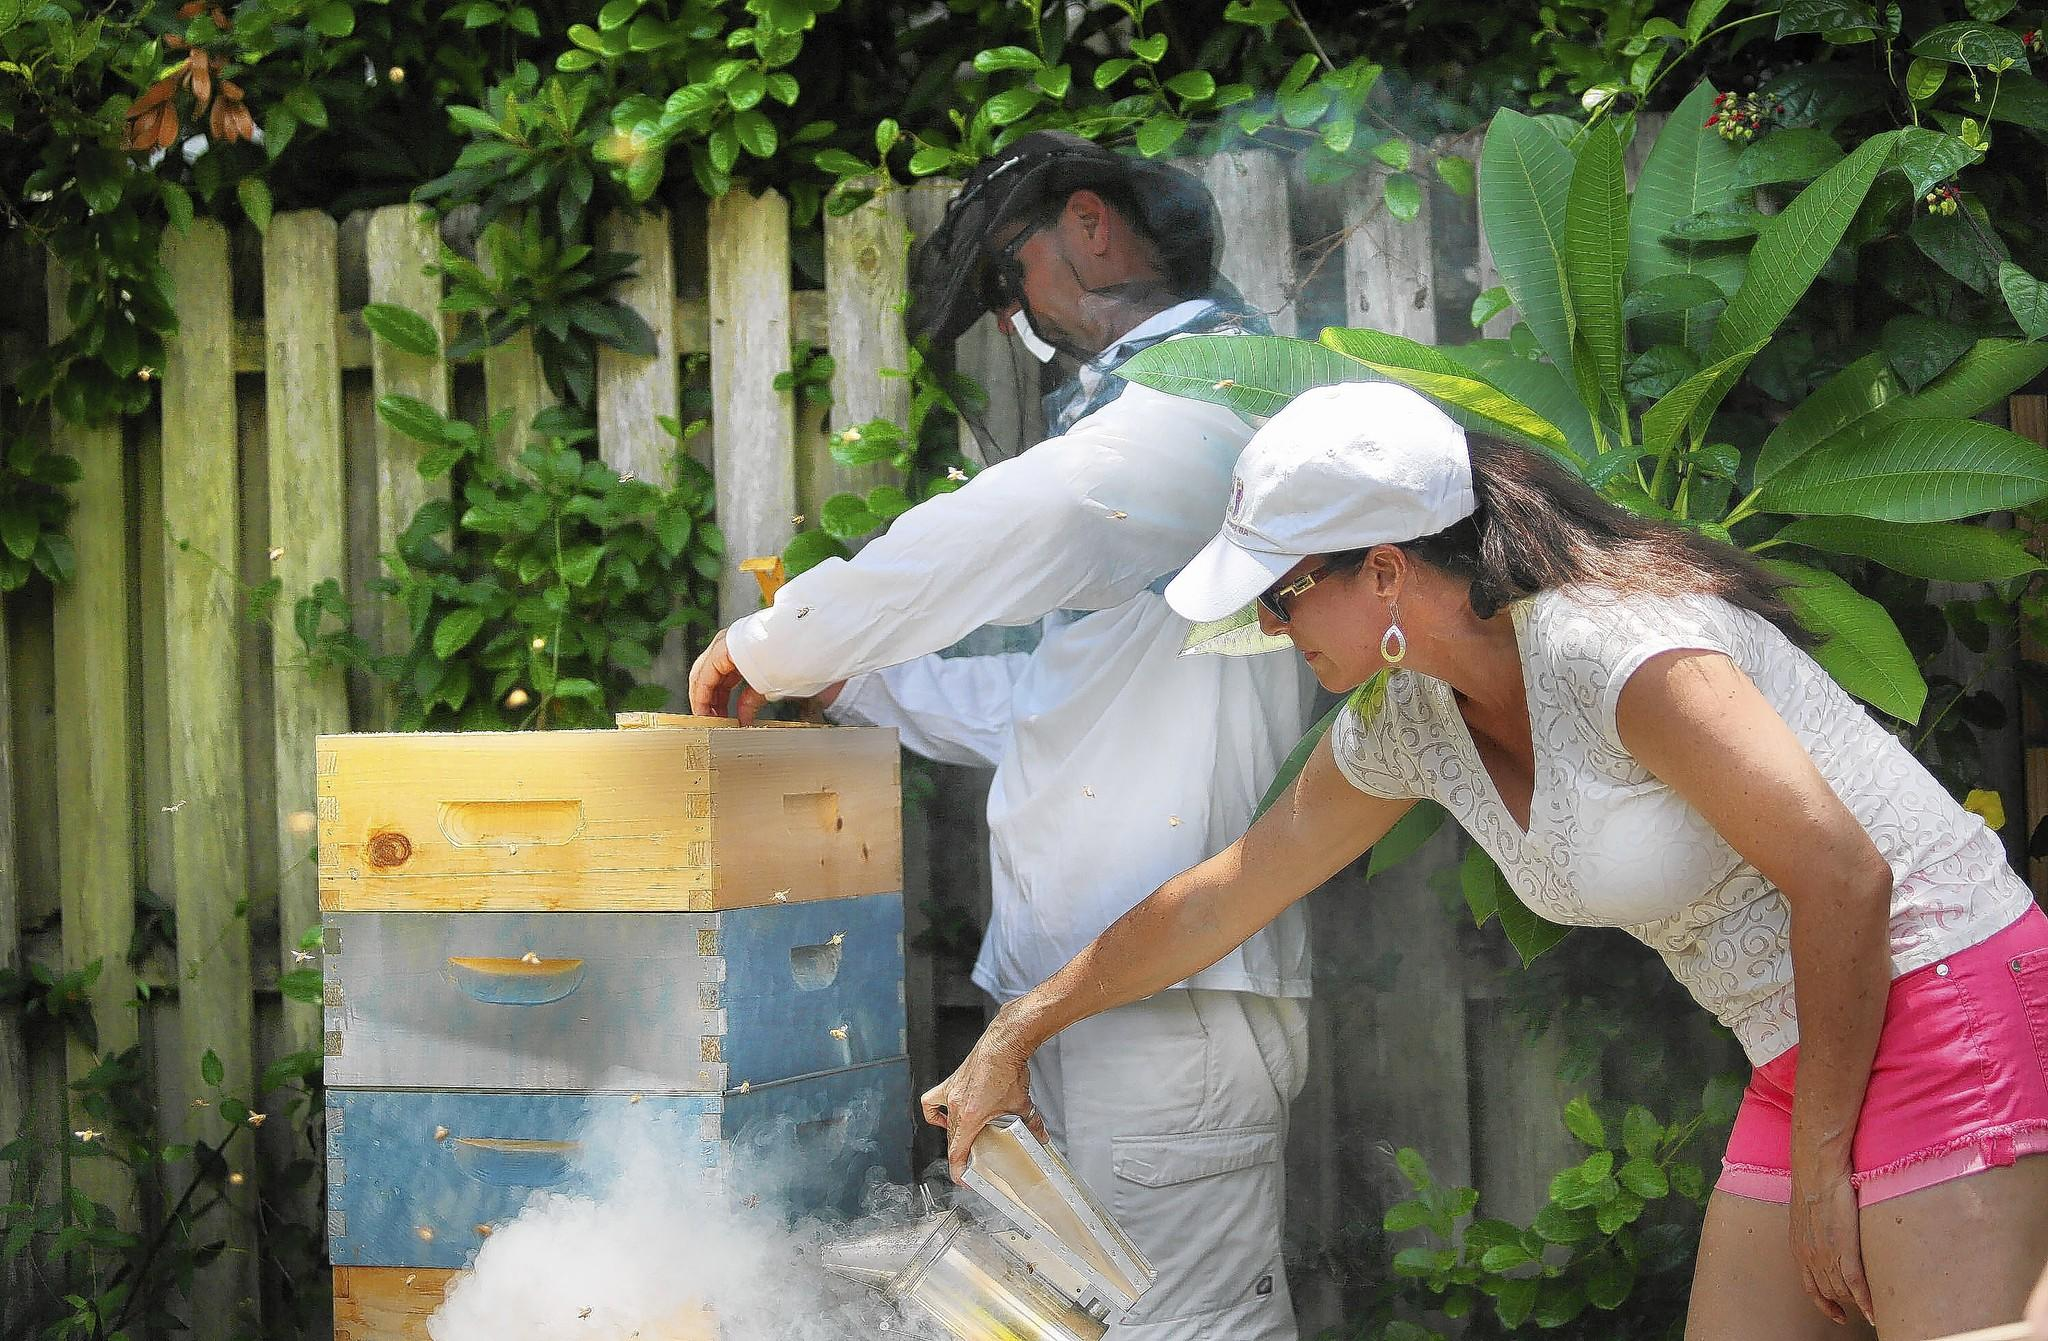 Chuck Fletcher and Dorine Olive harvest honey from their backyard hive. Motivated by a desire for natural food and the collapse of bee colonies worldwide, private citizens are taking up backyard beekeeping.